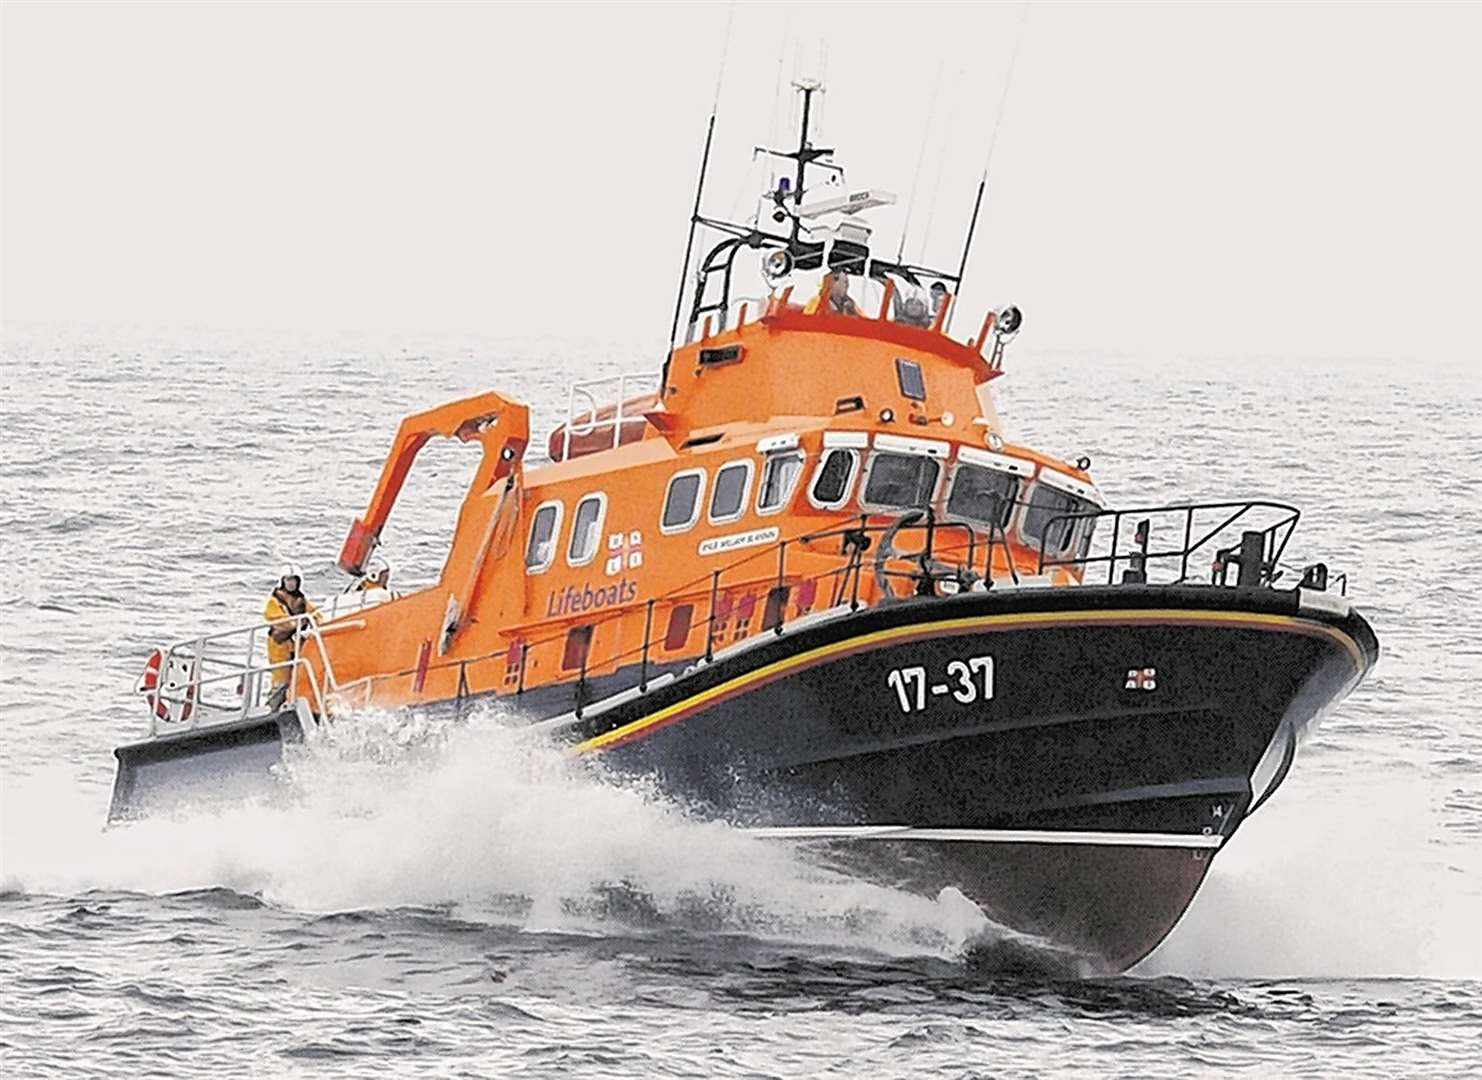 Buckie's RNLI lifeboat William Blannin and her volunteer crew has been in action again.